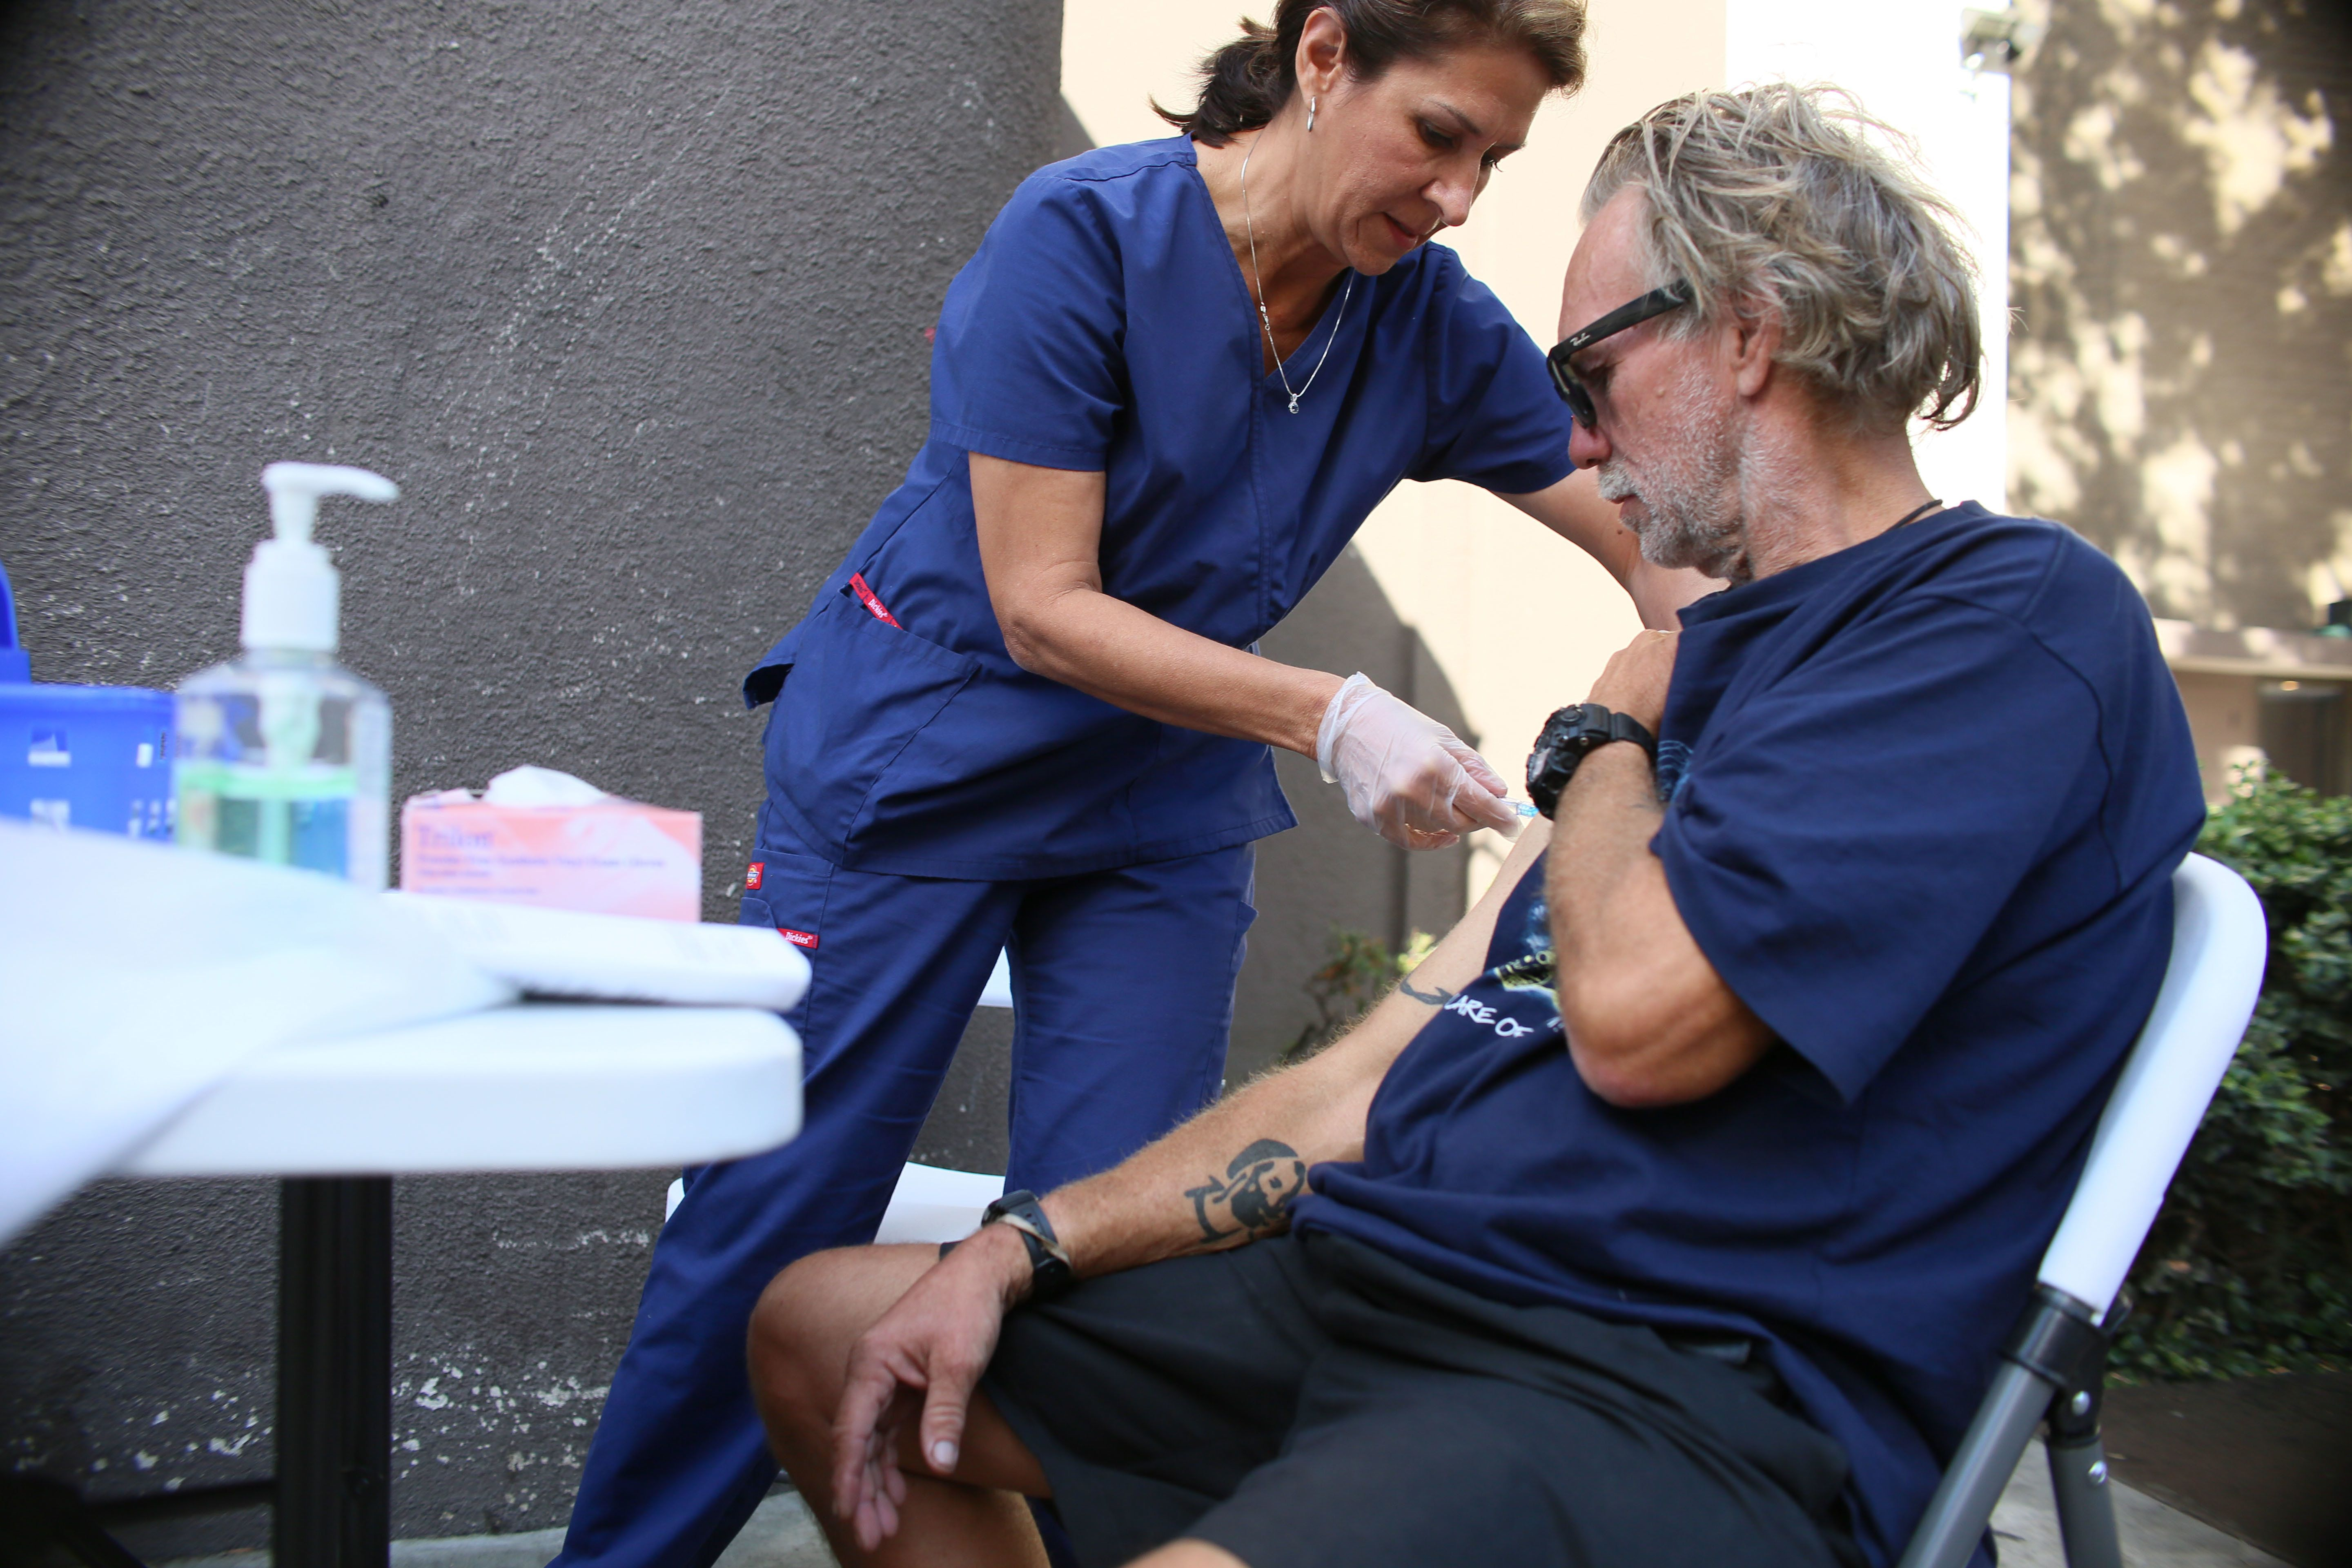 Paulina Bobenrieth, a San Diego county health department nurse, gives a hepatitis A vaccine to a homeless person in the California city on Oct. 4.